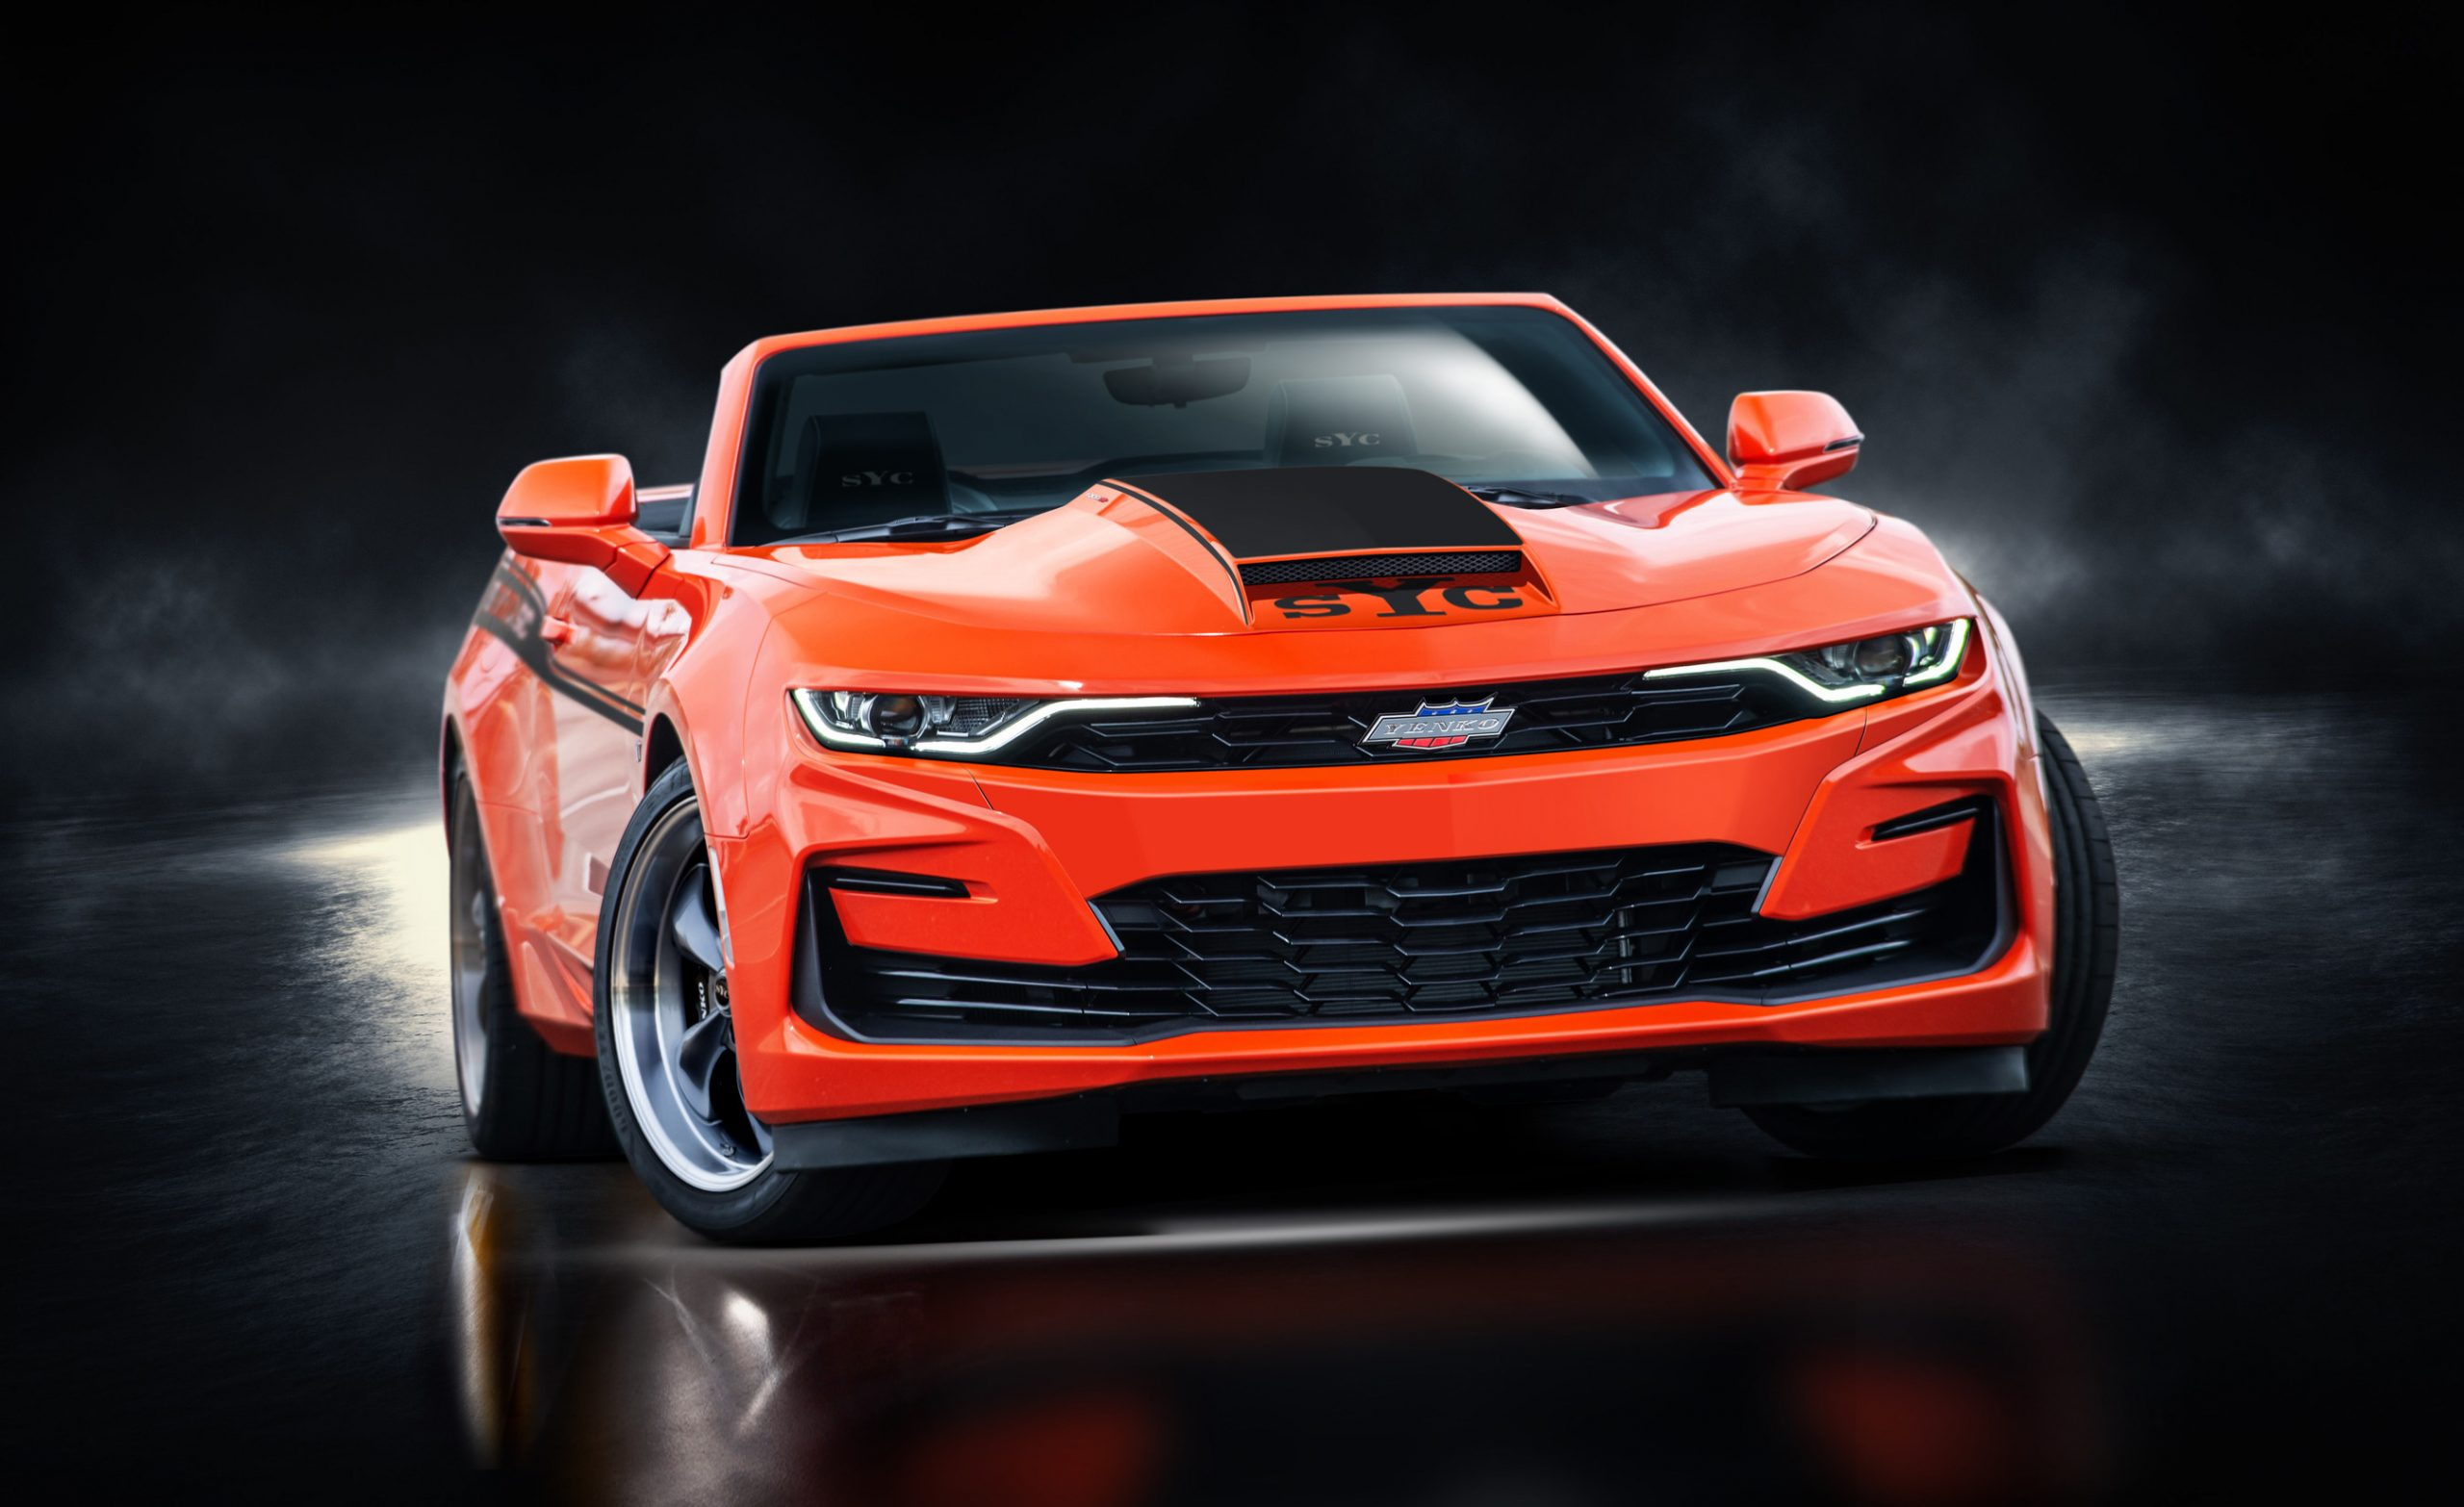 2020 Yenko Camaro Has 1,000 Hp And Is Available From Chevy 2021 Chevrolet Camaro 2Ss Torque, Weight, Horsepower